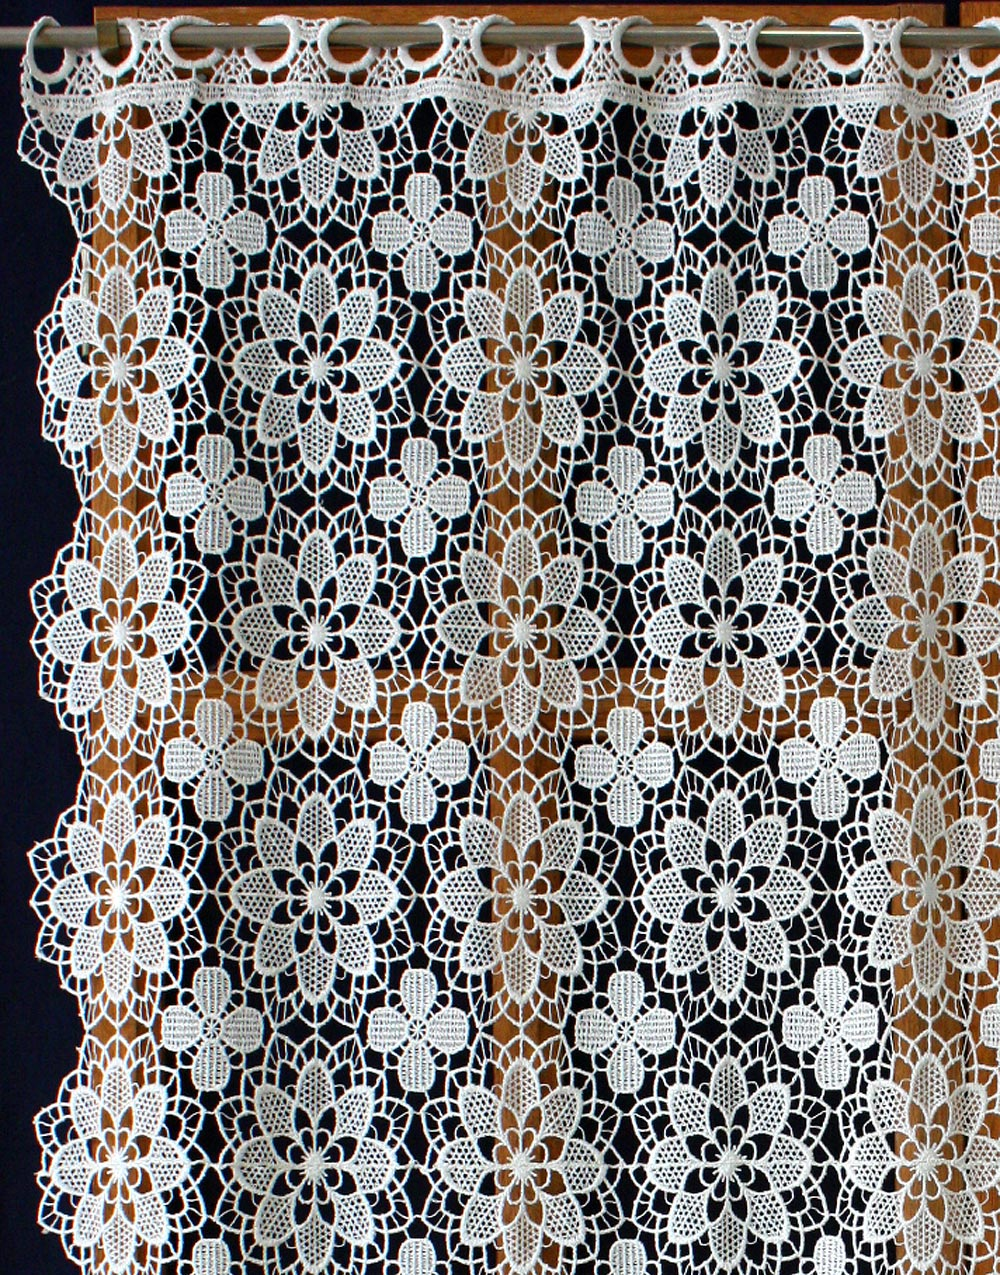 Lace kitchen curtain in natural color